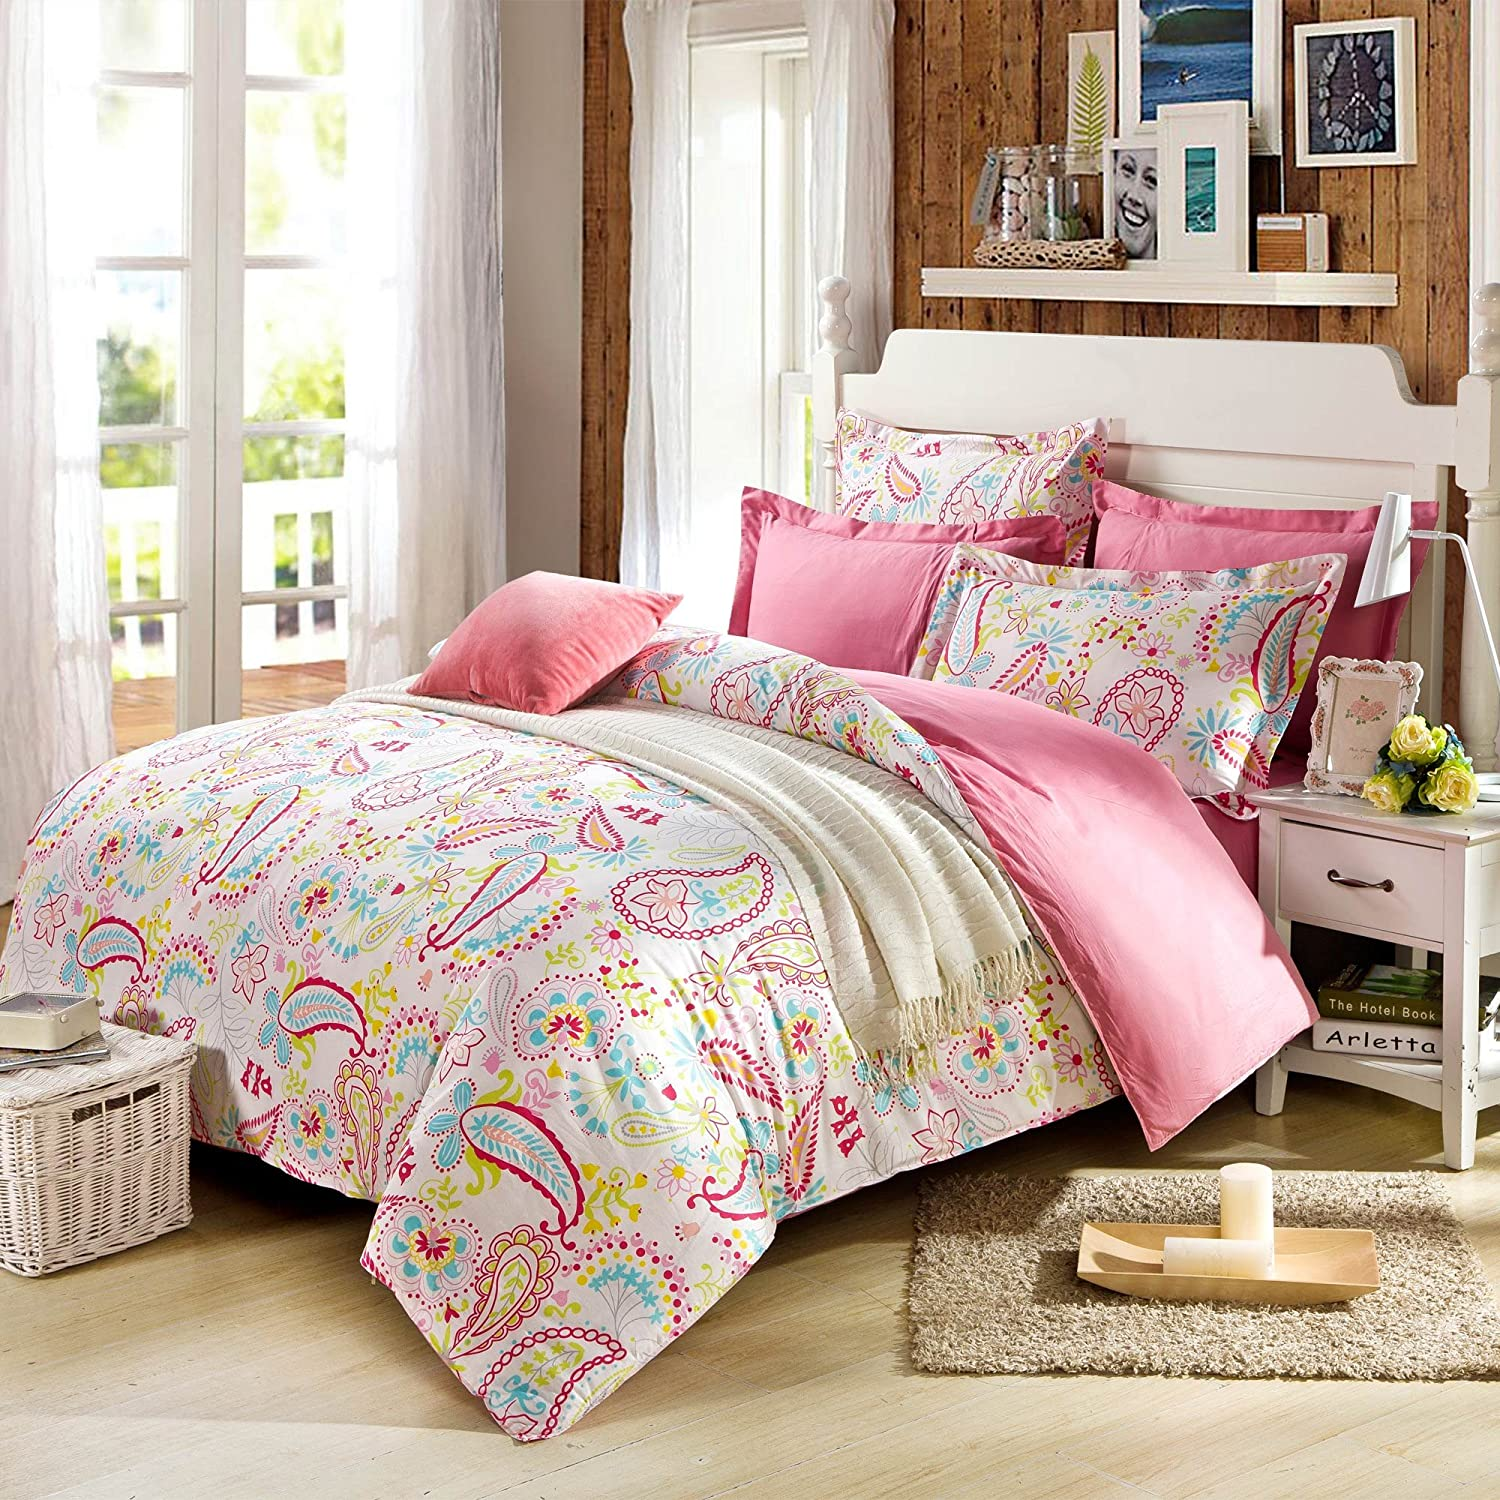 Amazon com  Cliab Paisley Bedding Pink Twin Or Queen For Teen Girls Duvet  Cover Set 100  Cotton 5 Pieces Size Optional   Home   Kitchen. Amazon com  Cliab Paisley Bedding Pink Twin Or Queen For Teen